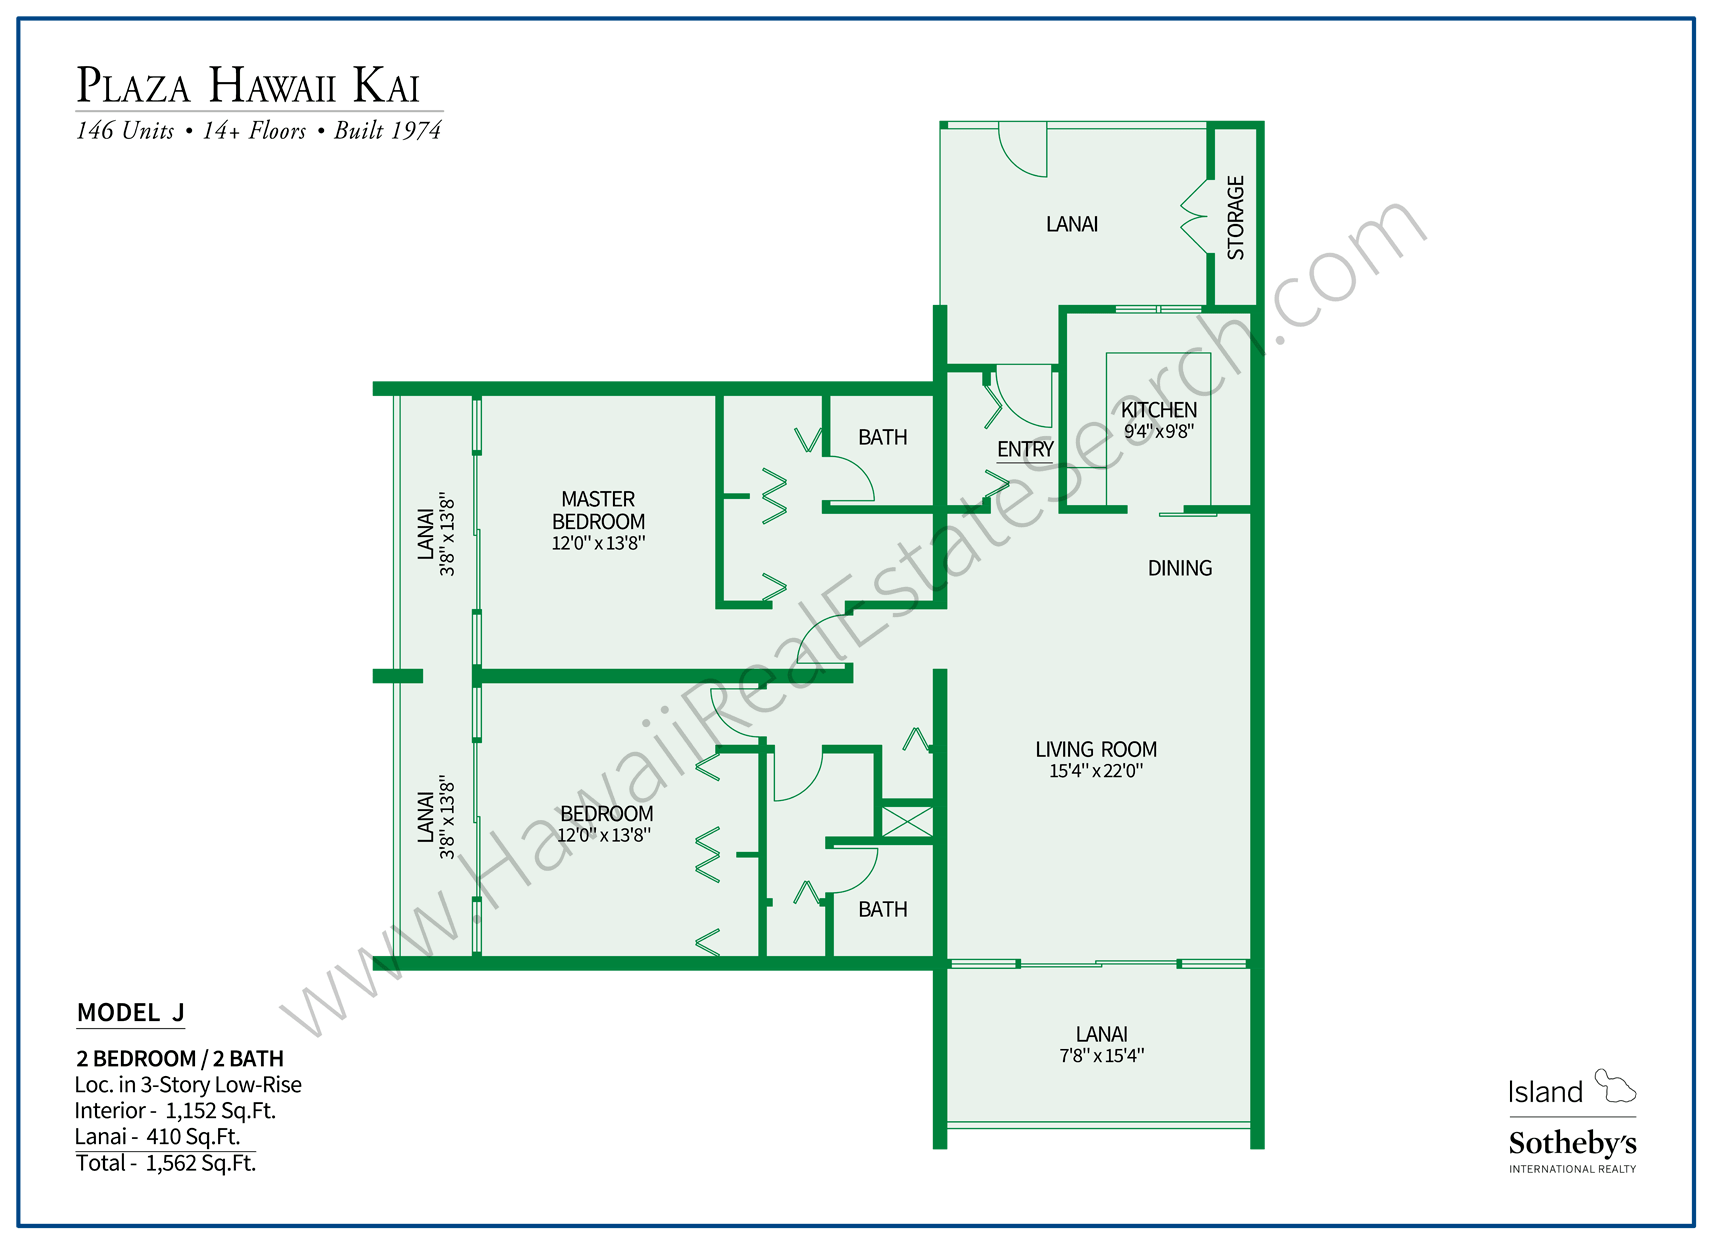 Plaza Hawaii Kai Floor Plan J